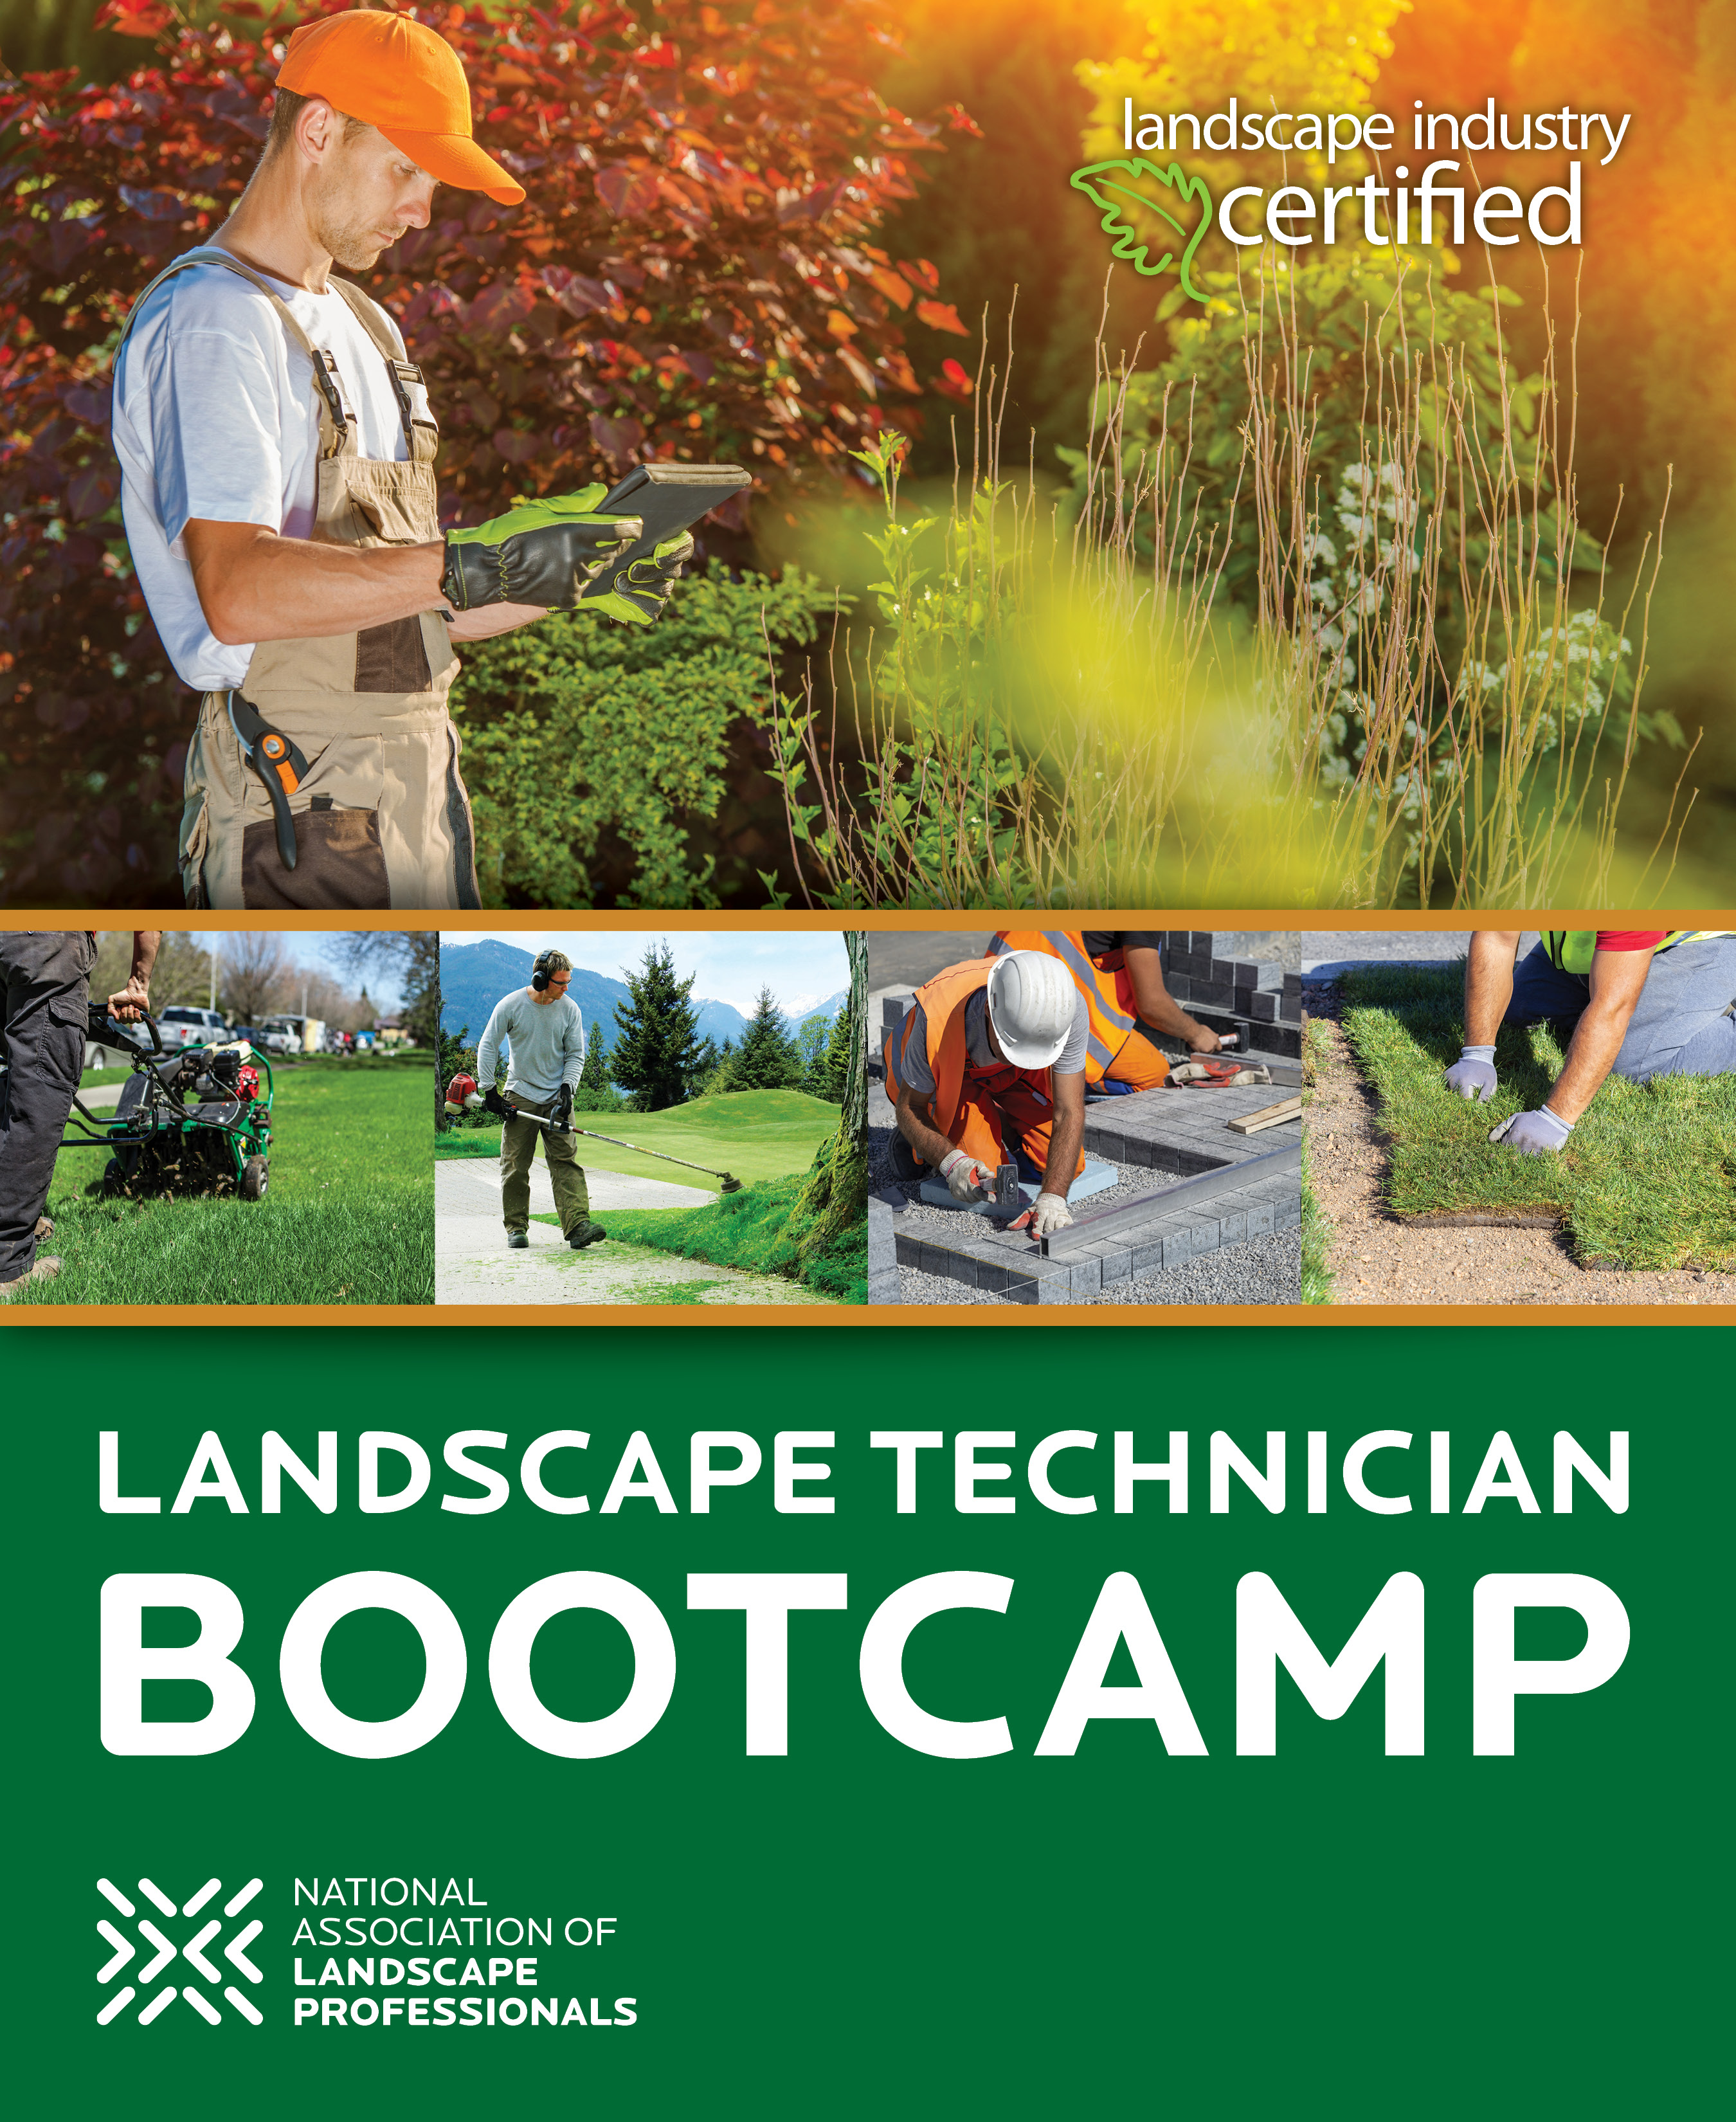 Landscape Technician Bootcamp Manual (Contractors)